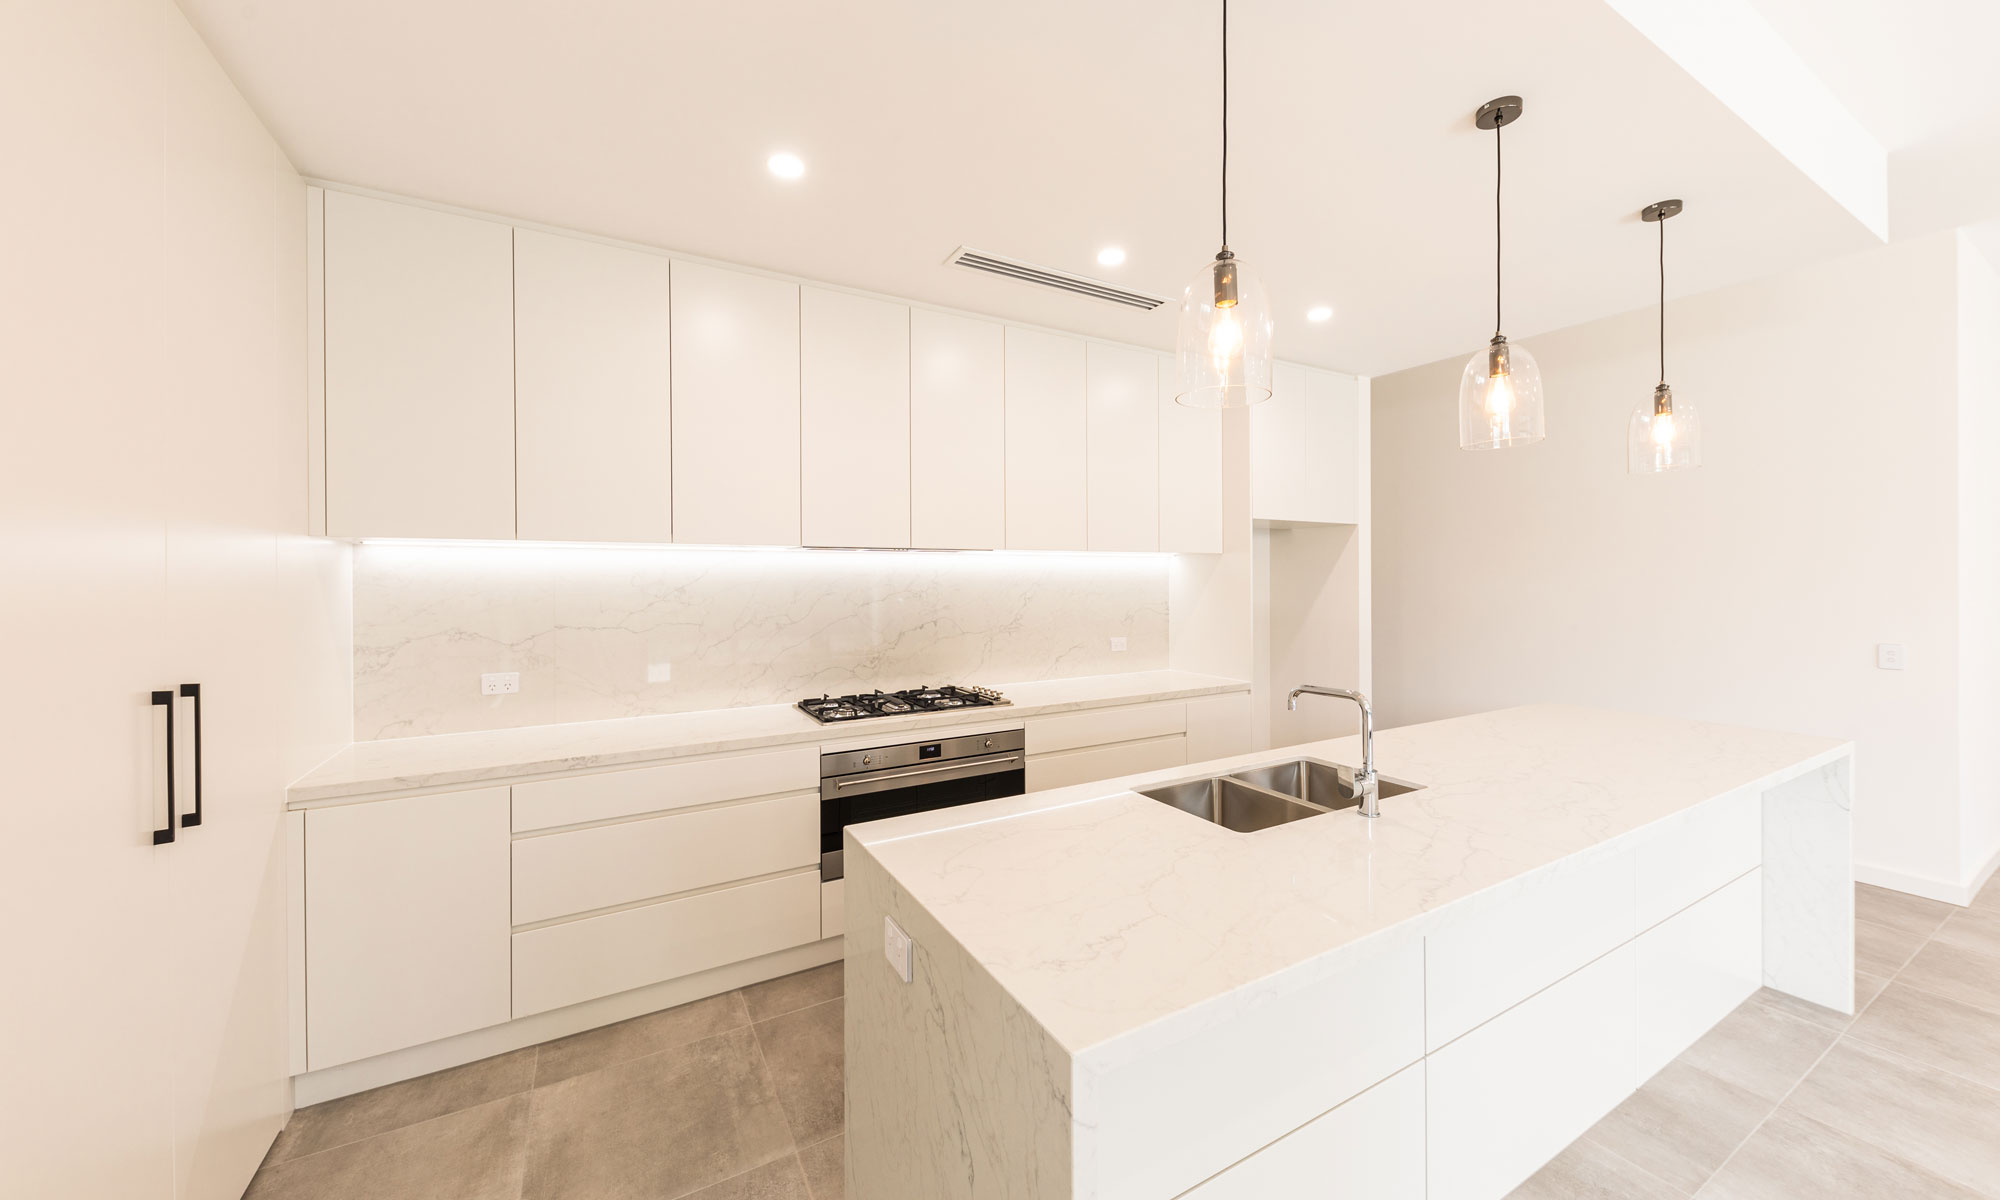 Somerton Park Normus Homes kitchen aspect